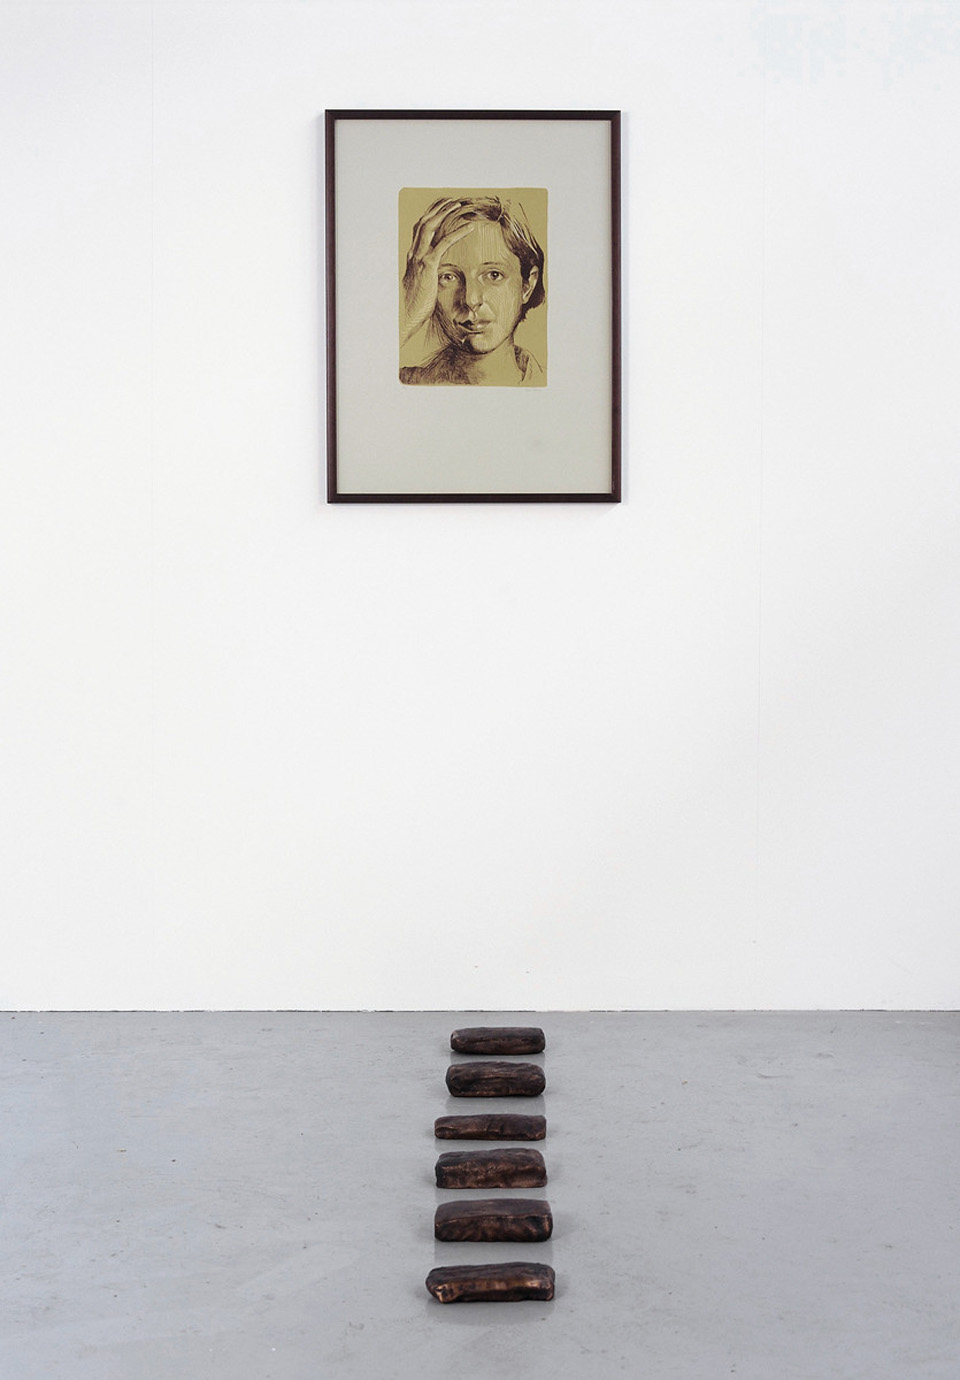 I Want to Function in the Present Time (Self-Portrait II and Bricks)